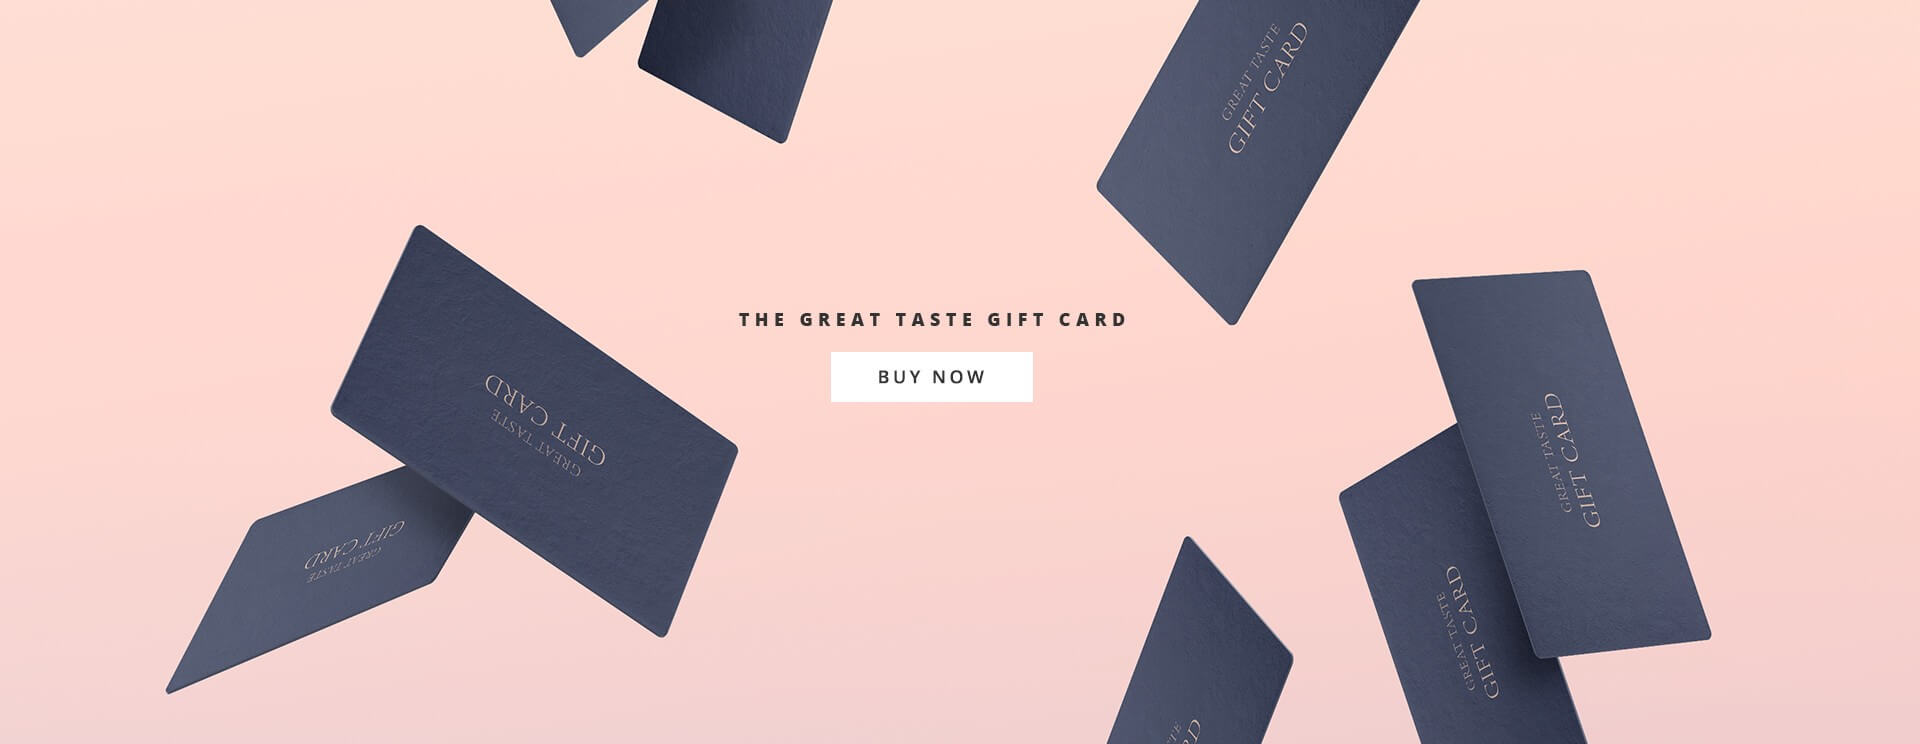 Great Gift Cards on offer at The Oatlands Chaser